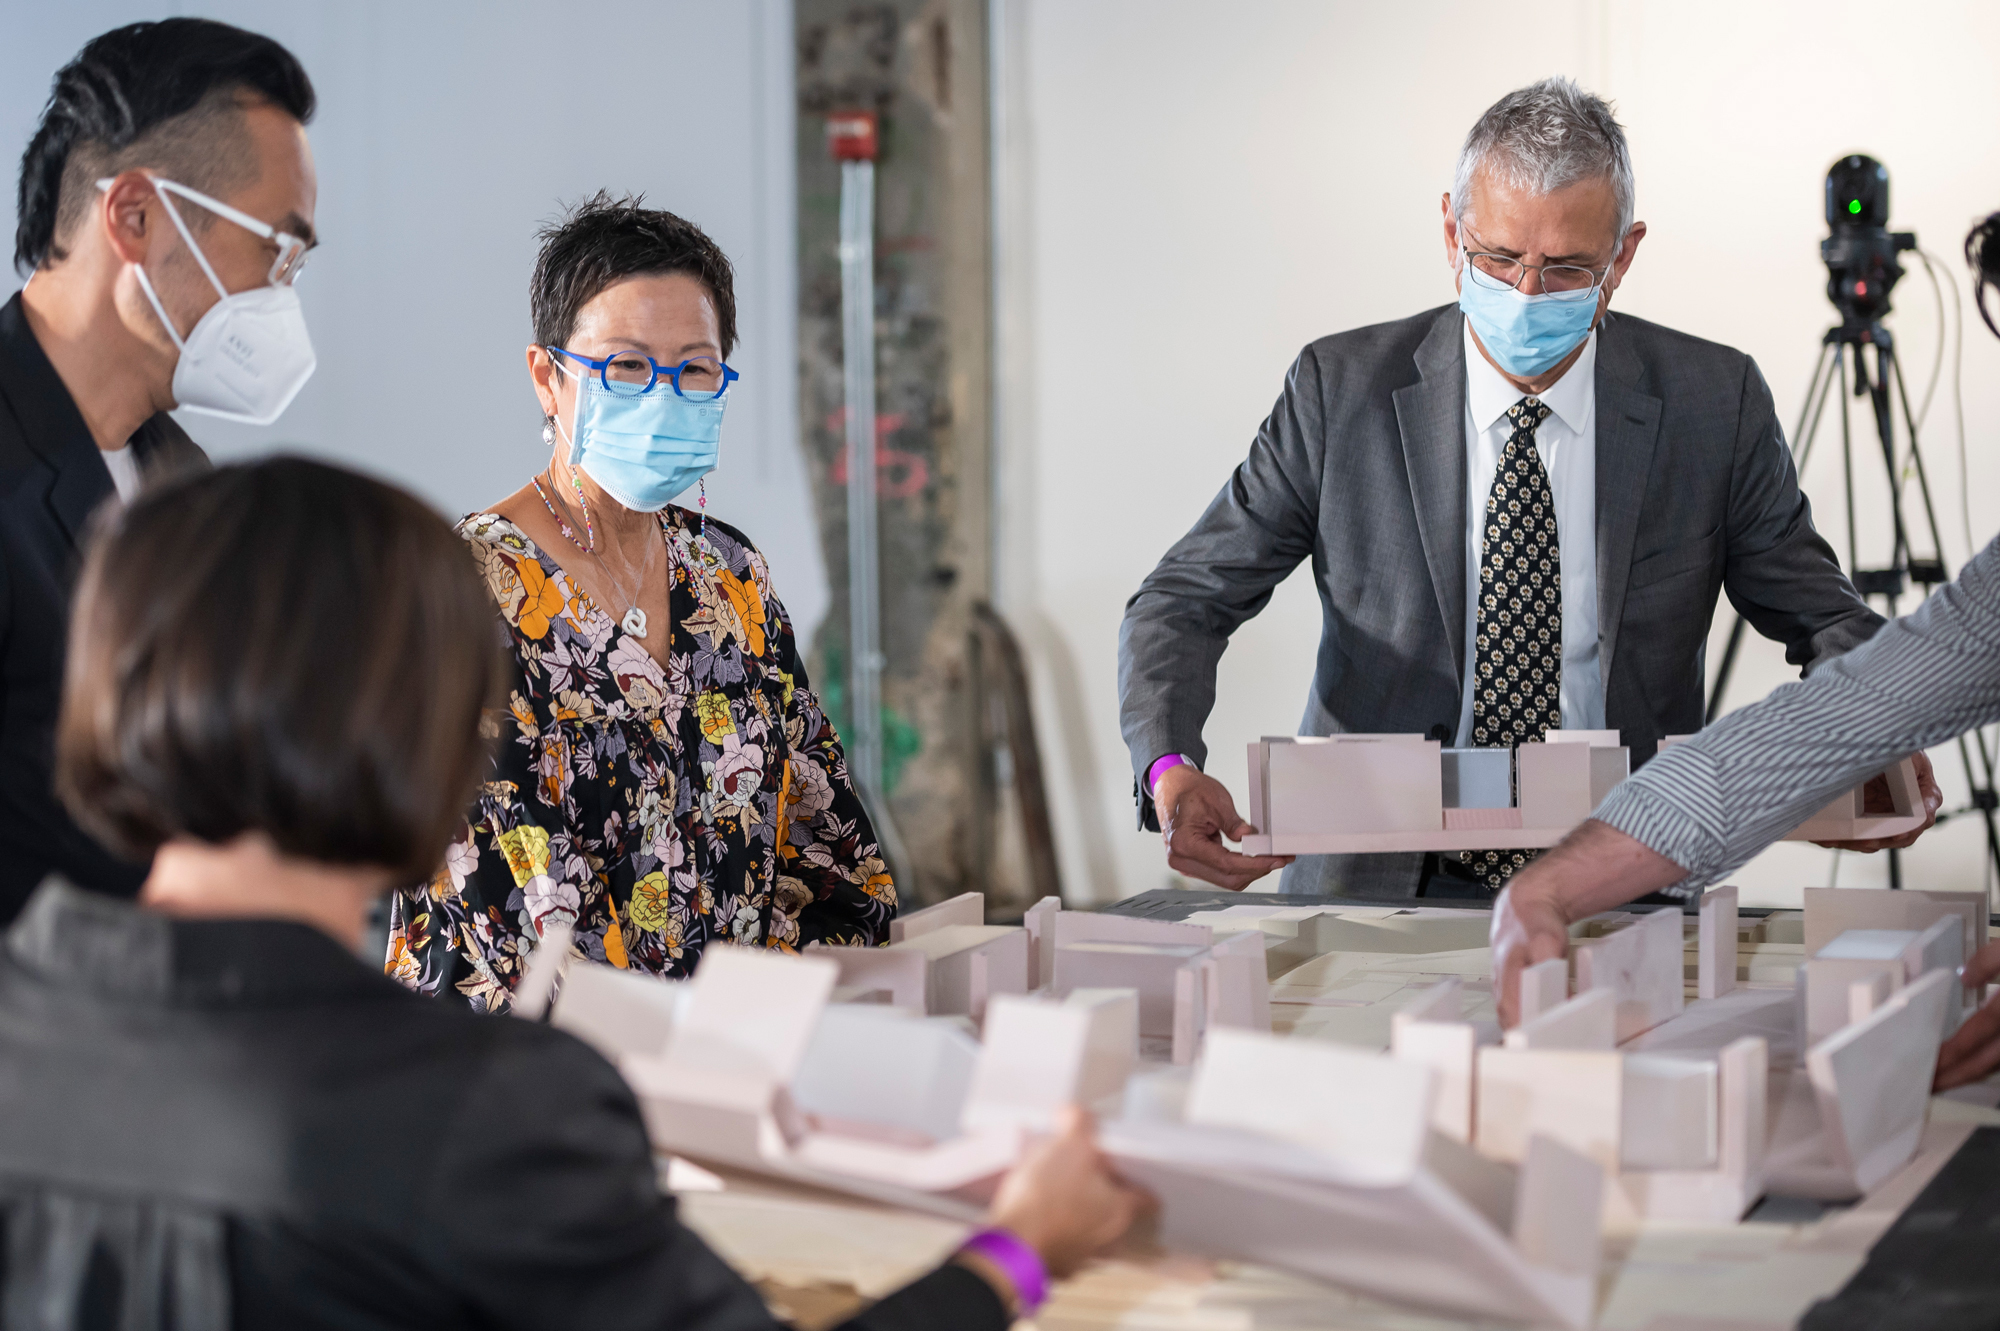 people looking at architecture models